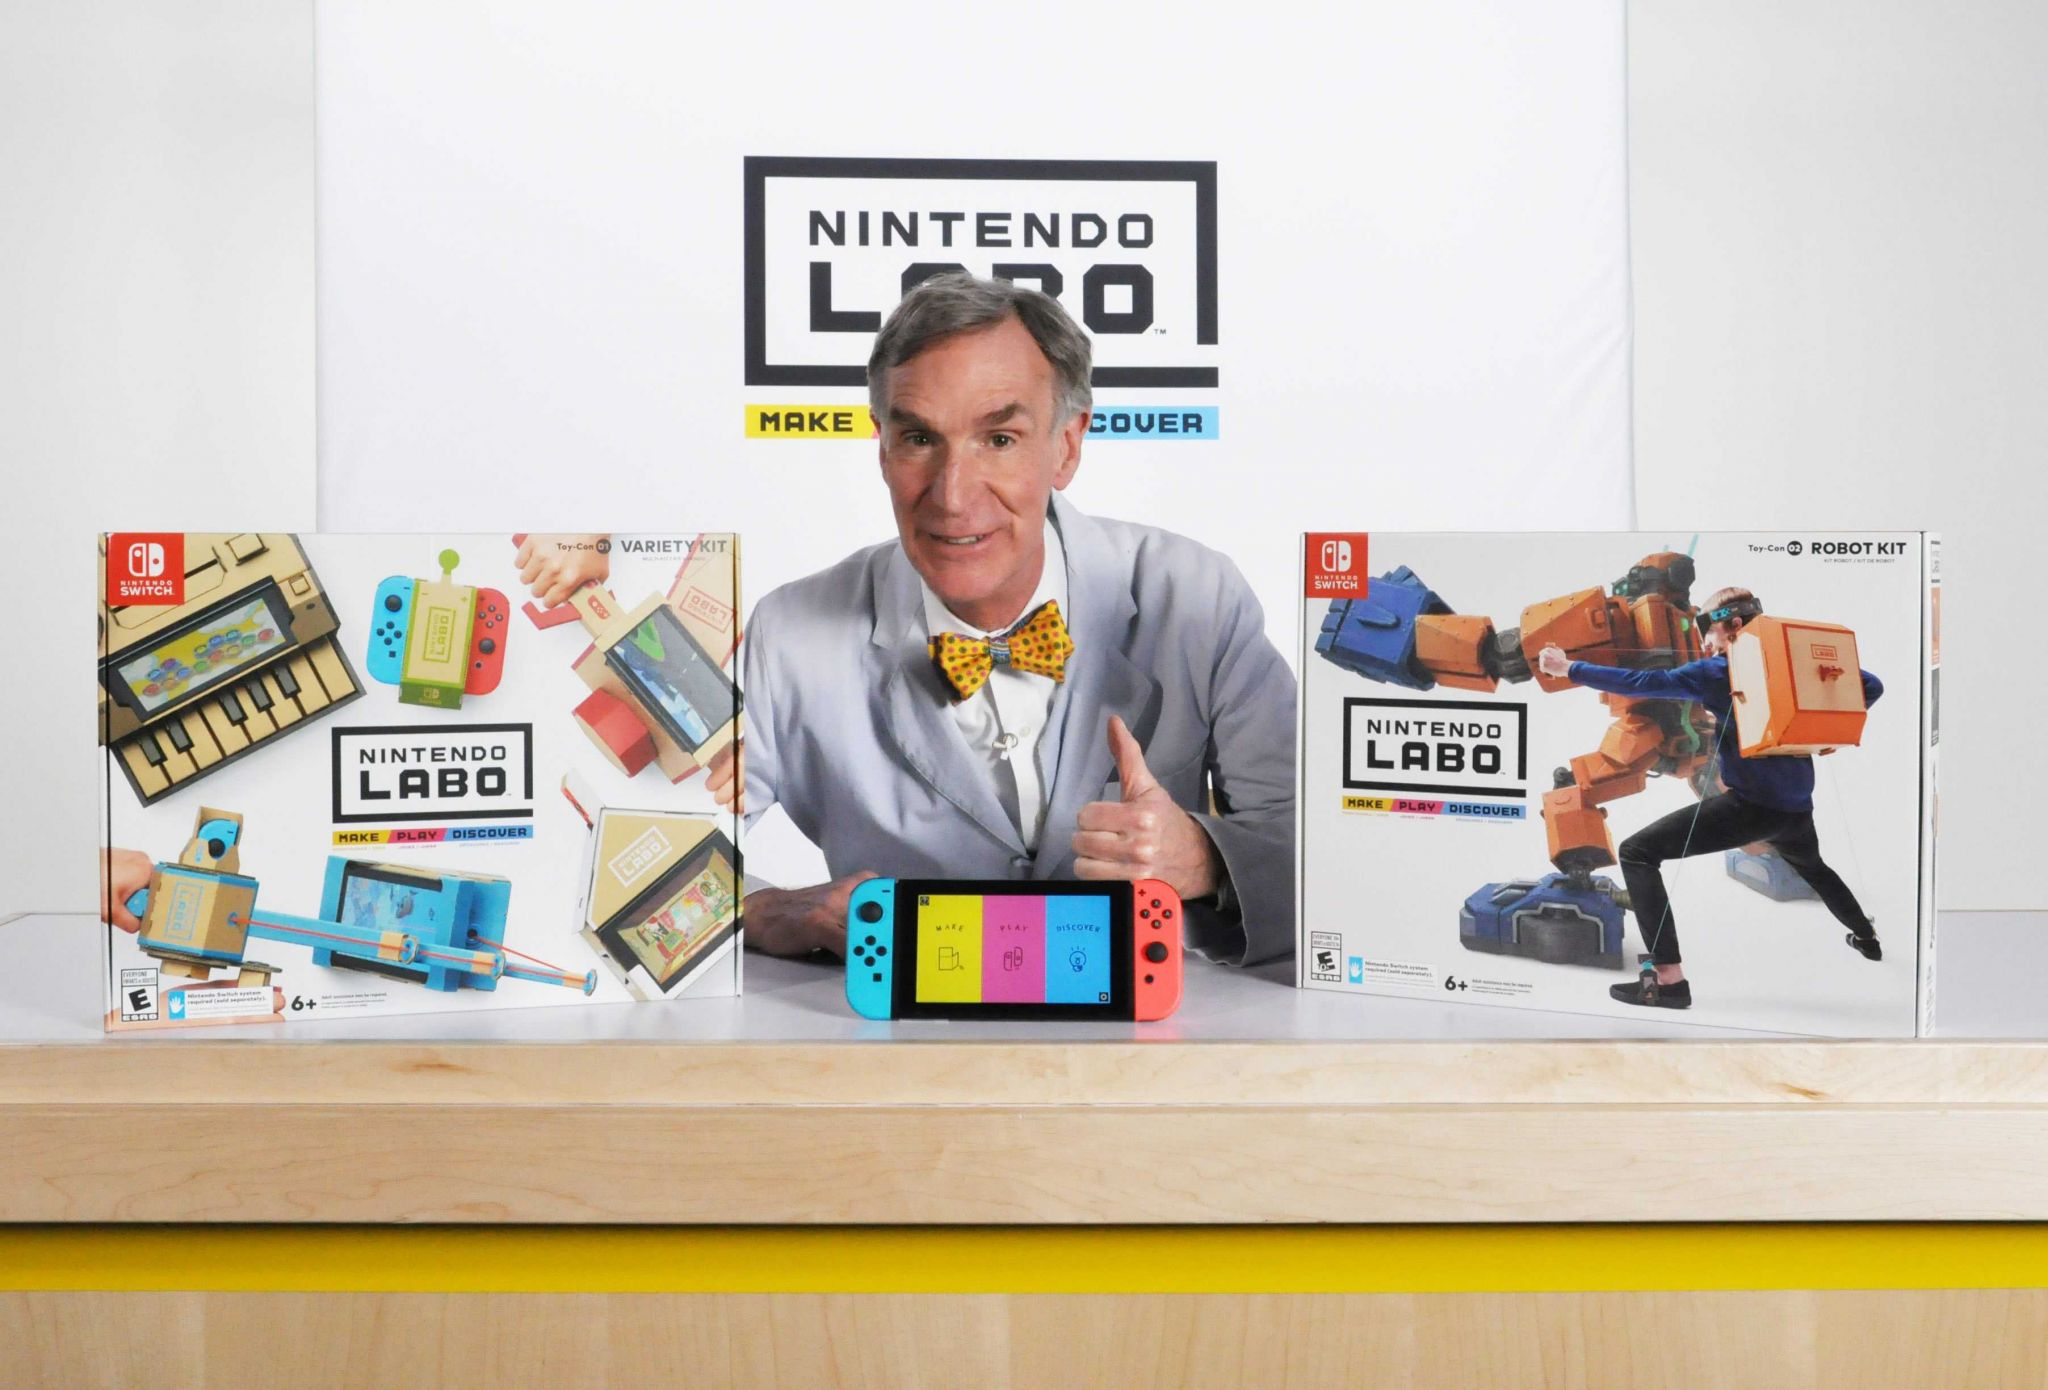 Bill Nye Heat Video Worksheet Answers and Nintendo Labo Launches today Watch Bill Nye Mess Around with It